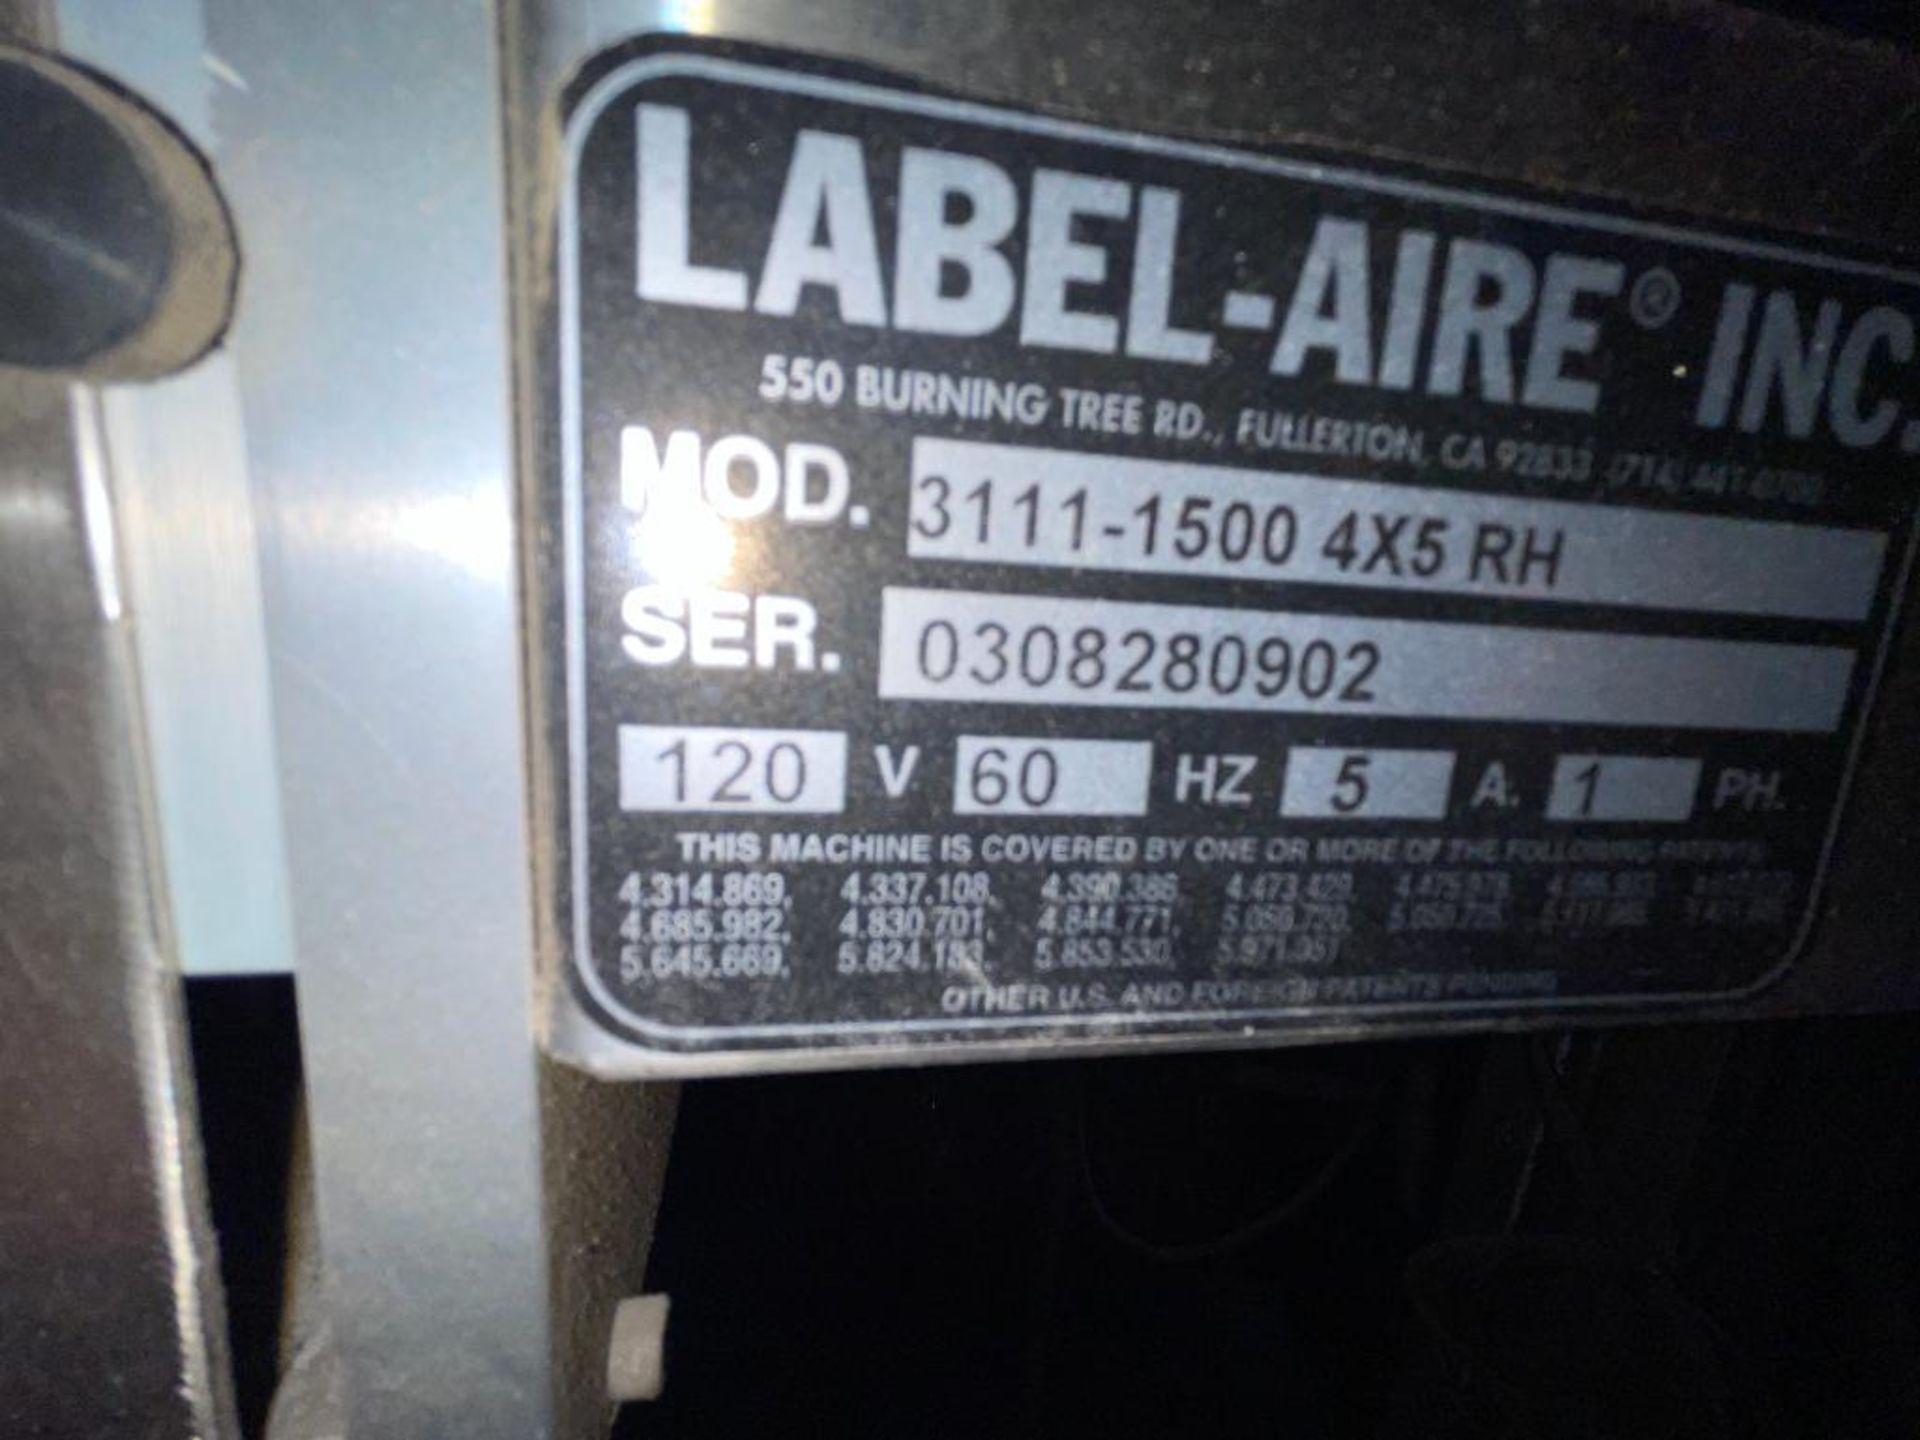 Label-Aire labeler - Image 5 of 10